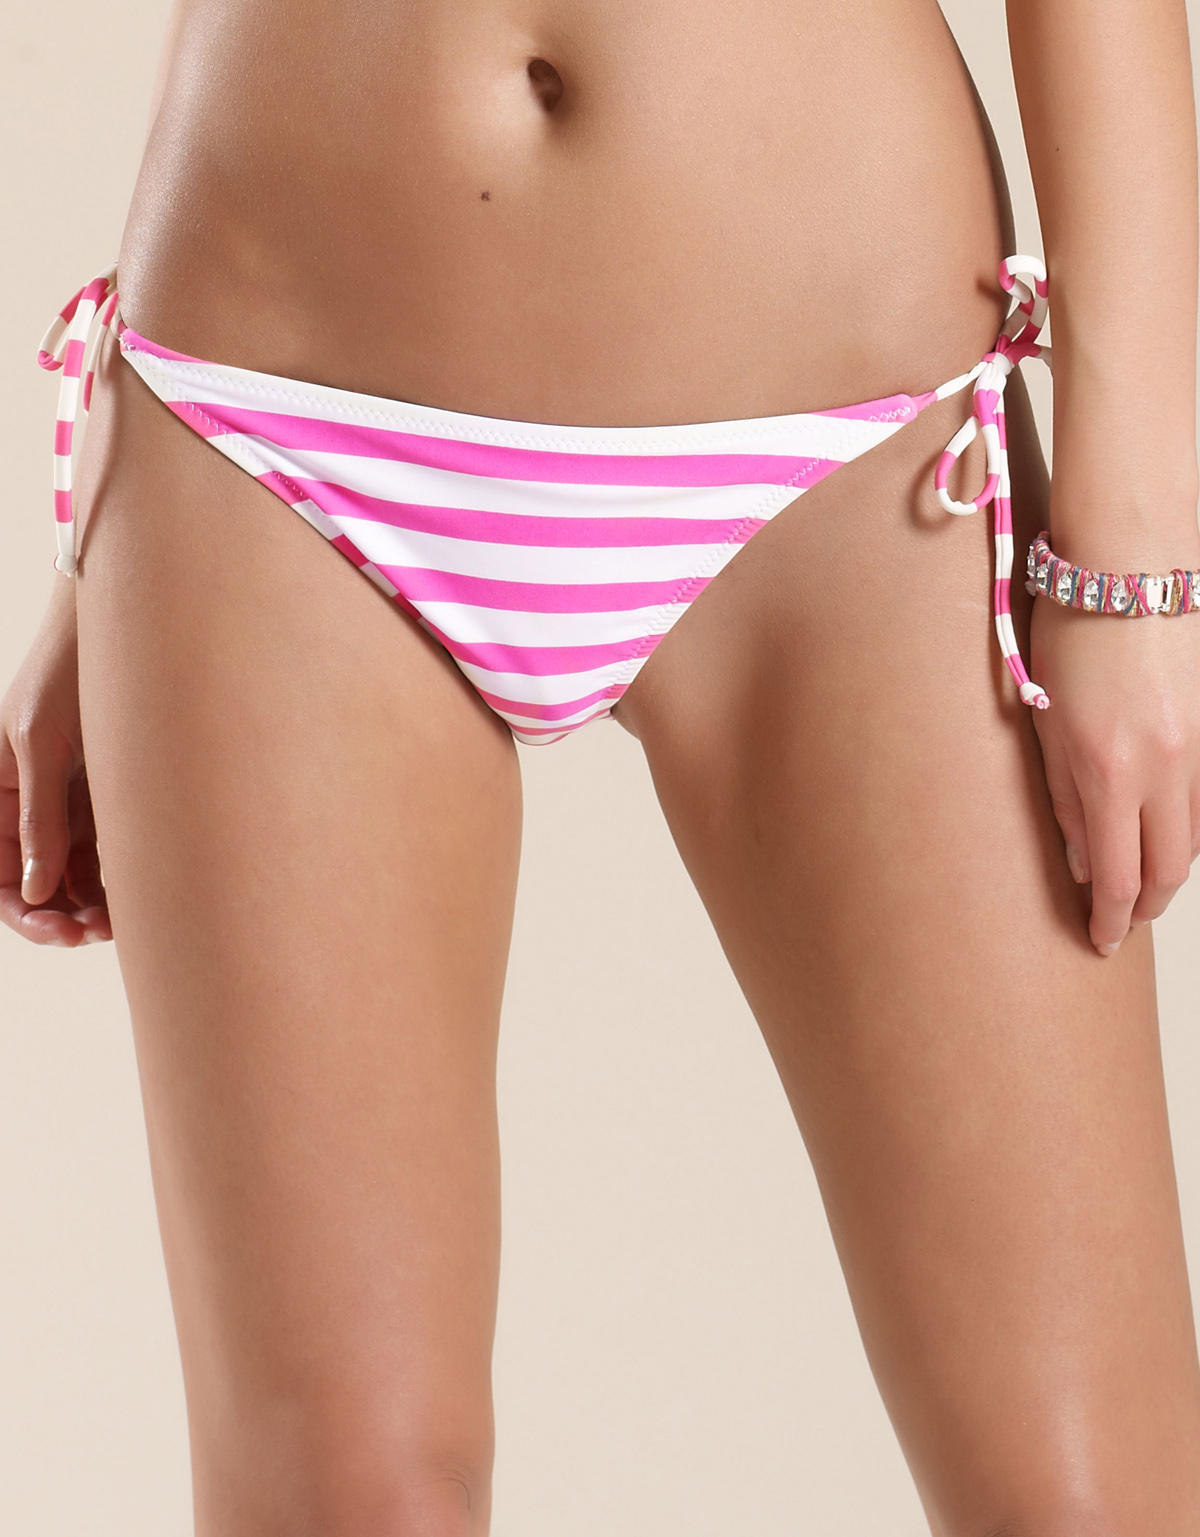 M0NS00N Accessor1ze PINK Horizontal Striped Bikini Bottoms - Size 8 to 18